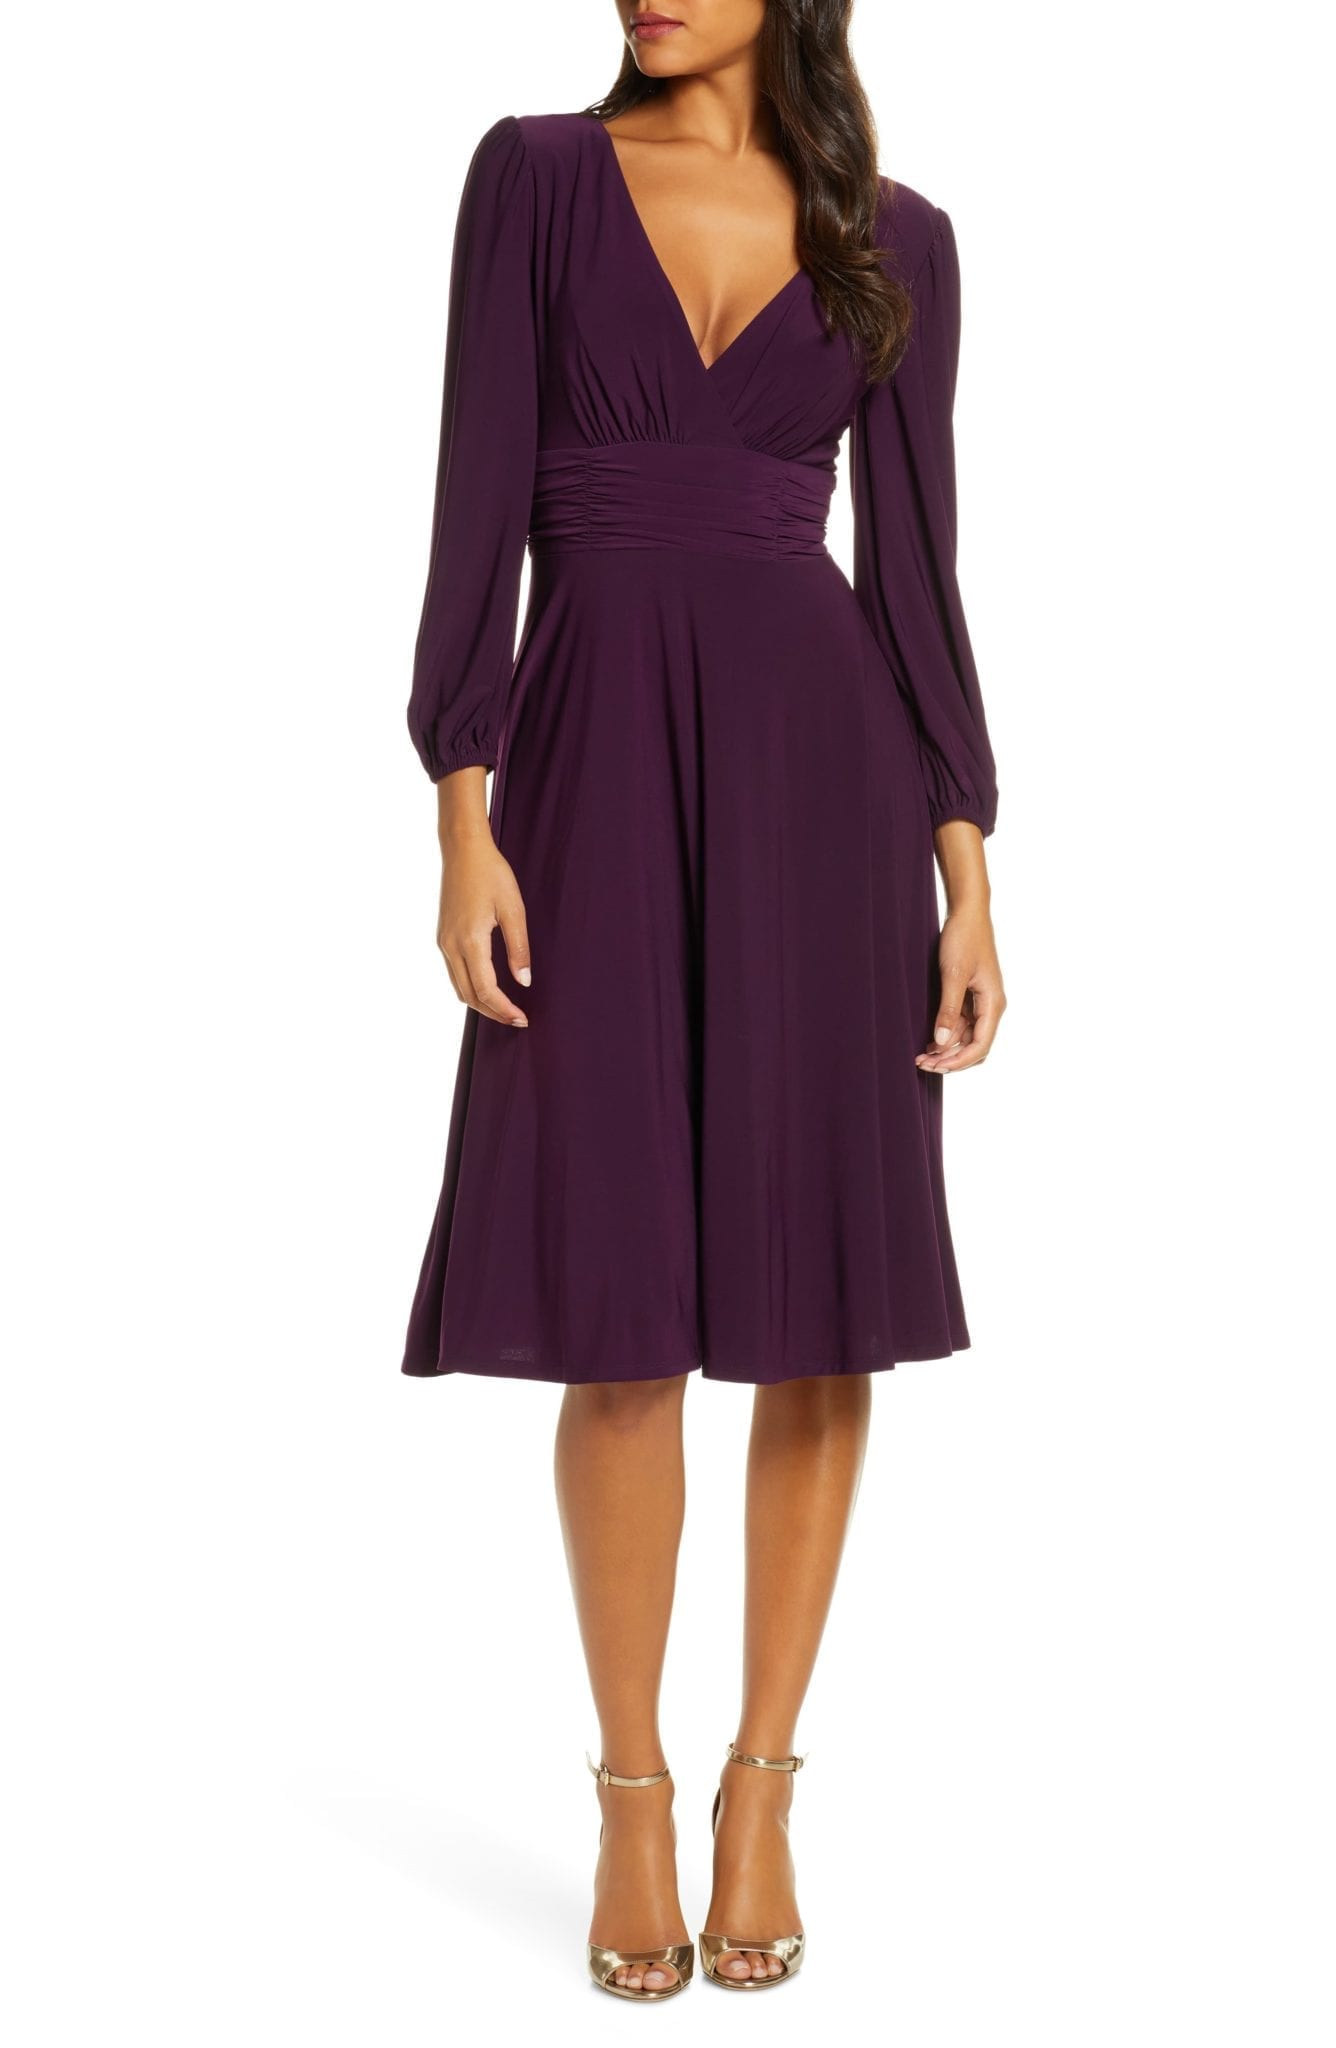 ELIZA J V-Neck Fit & Flare Dress